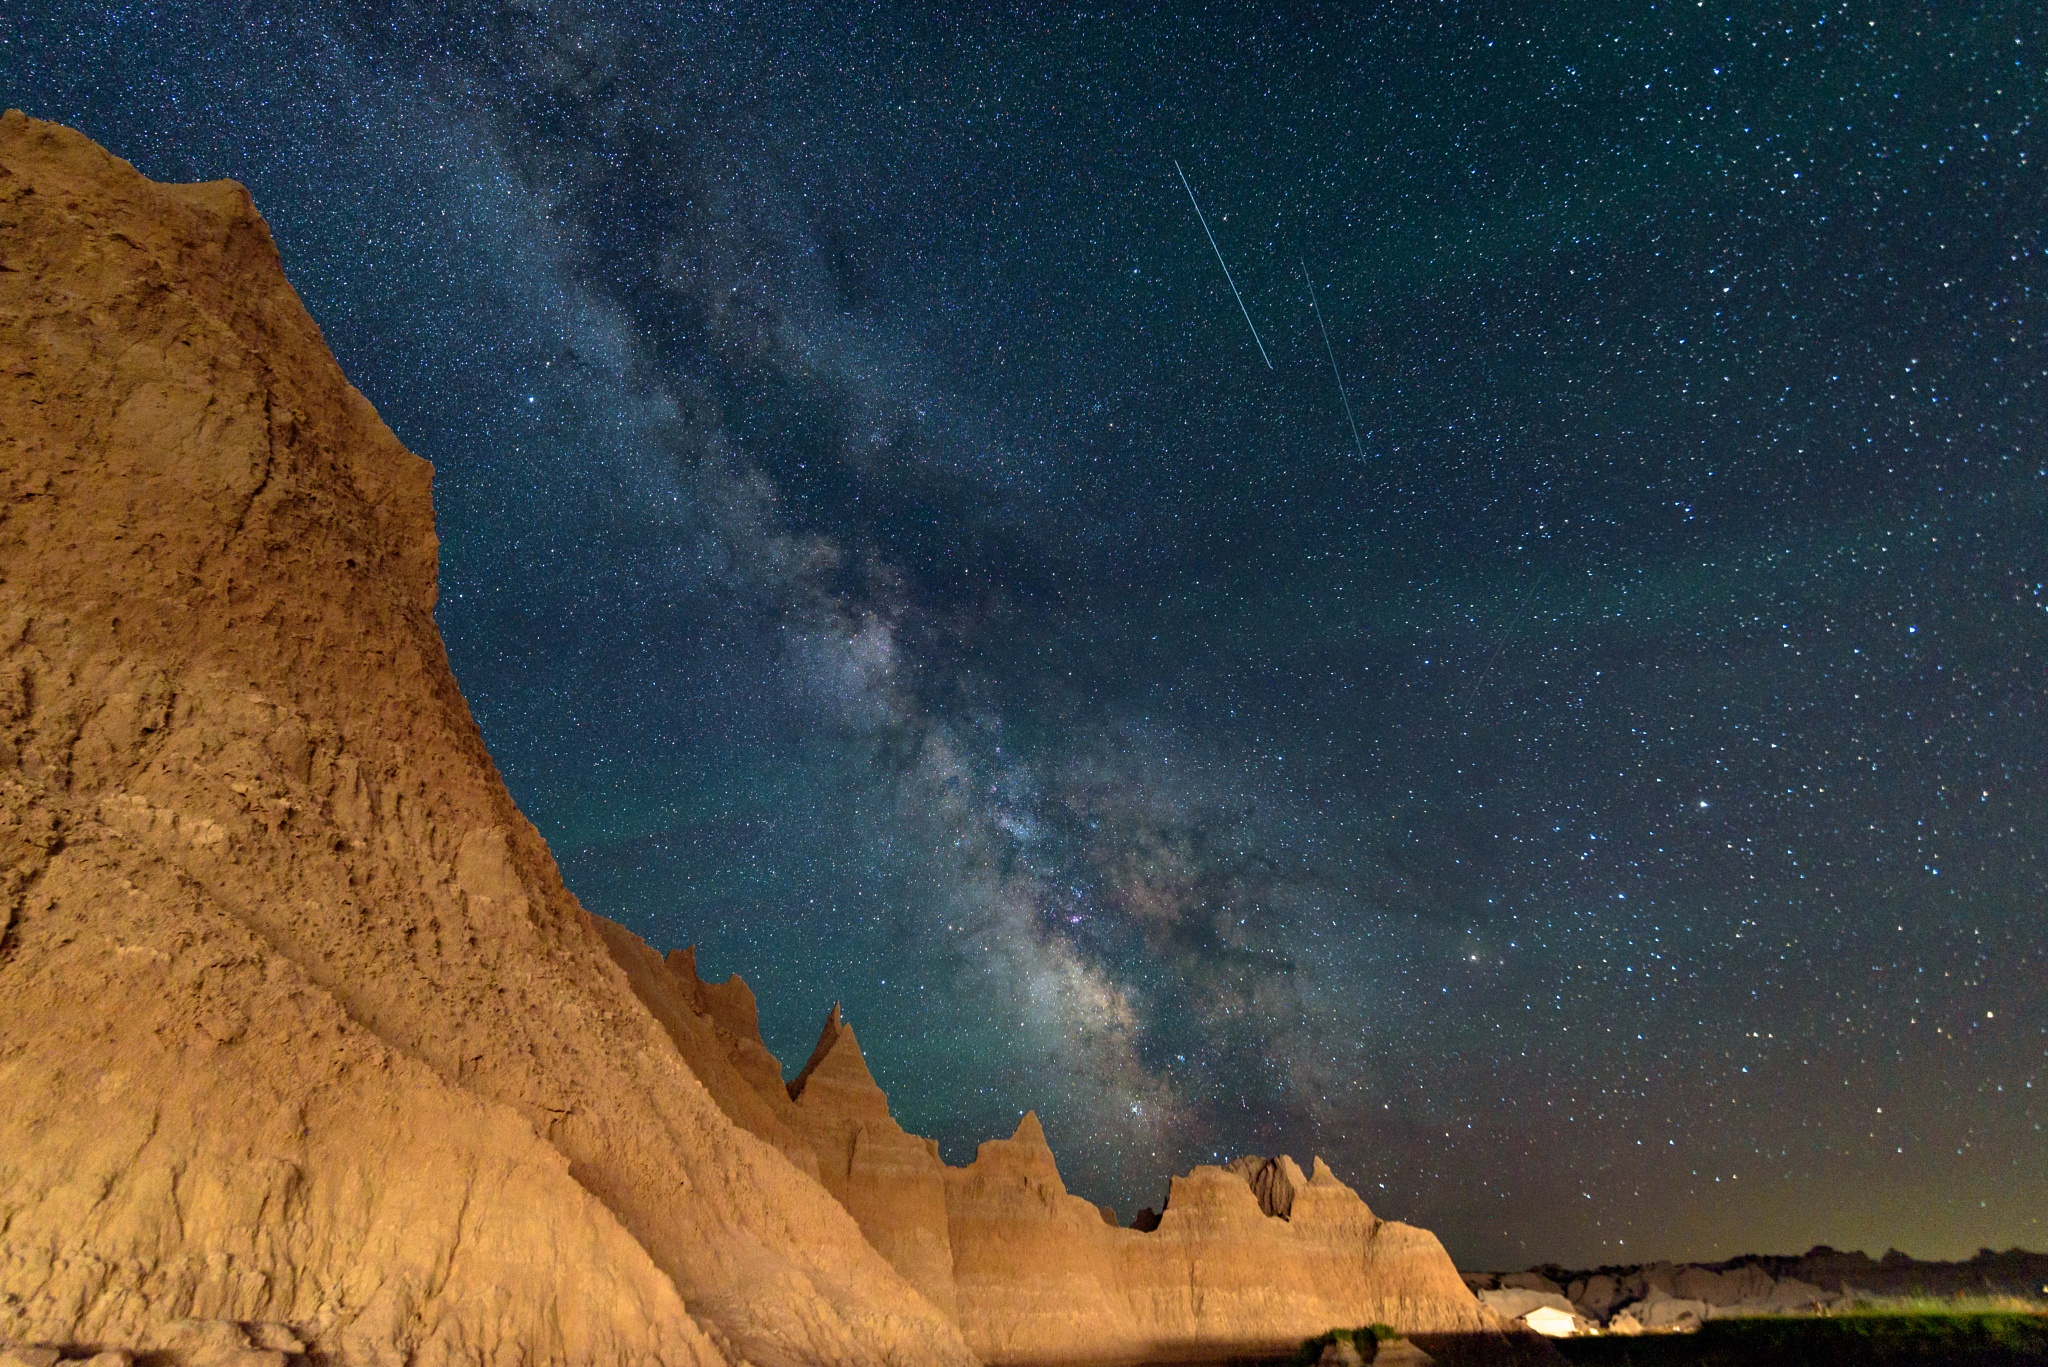 Badlands Milky Way by Tom Lambui